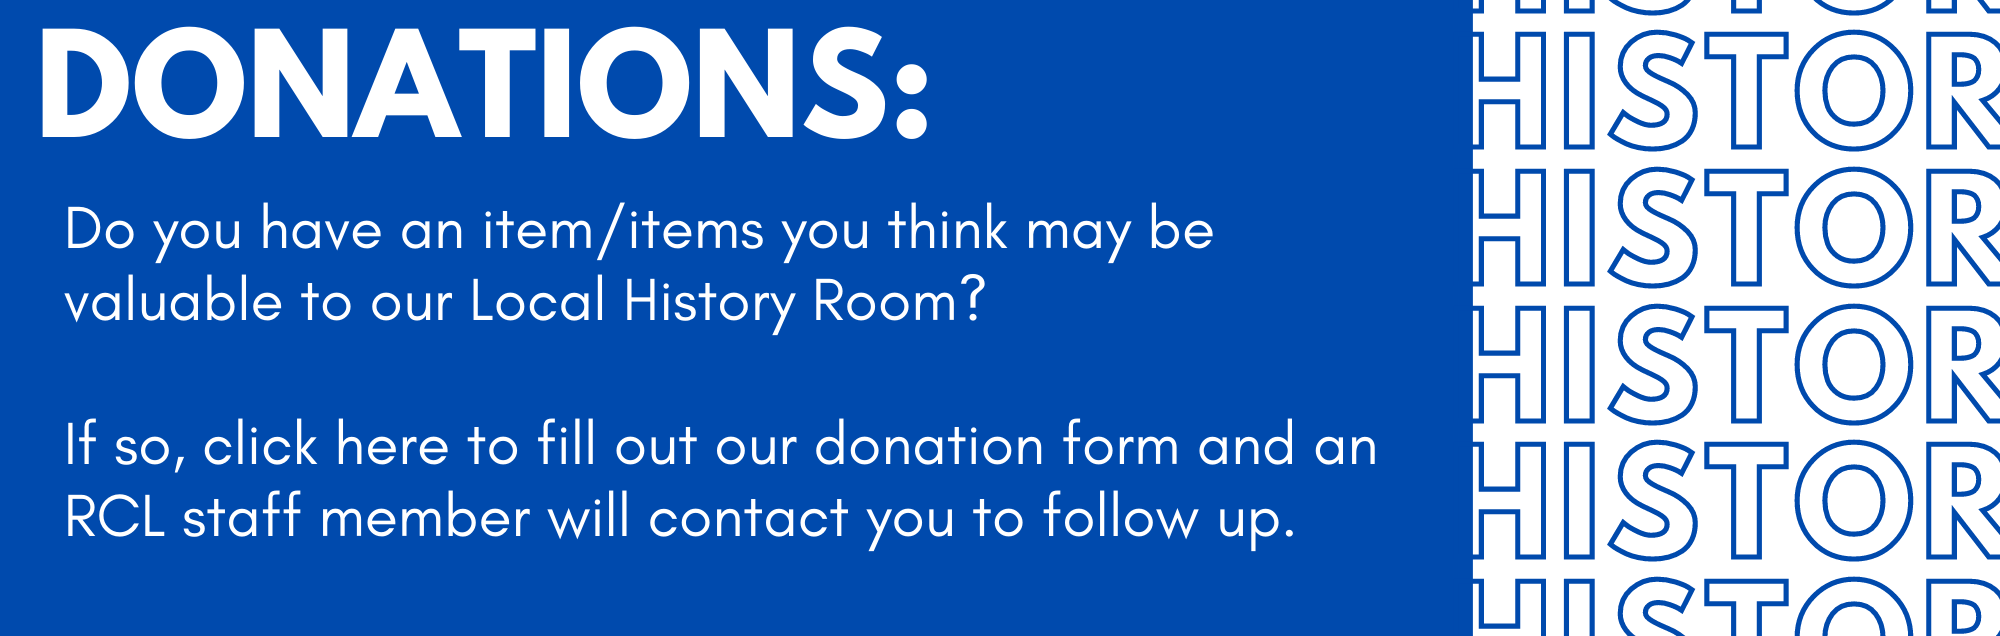 History Room Donation Form Link.png